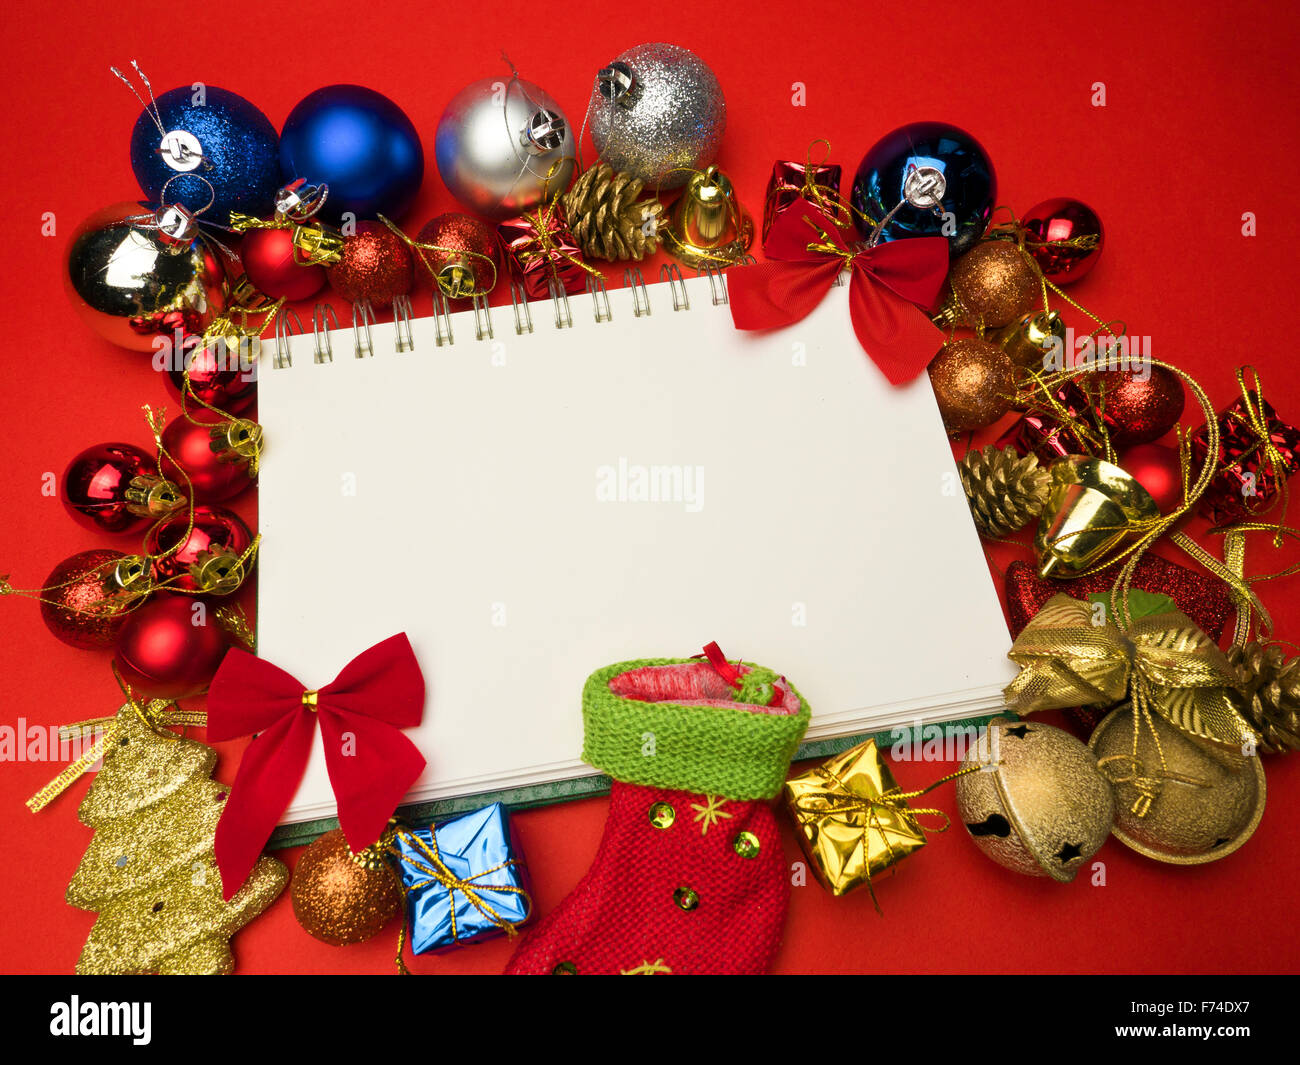 christmas card conception with diversity decorations on red background Stock Photo